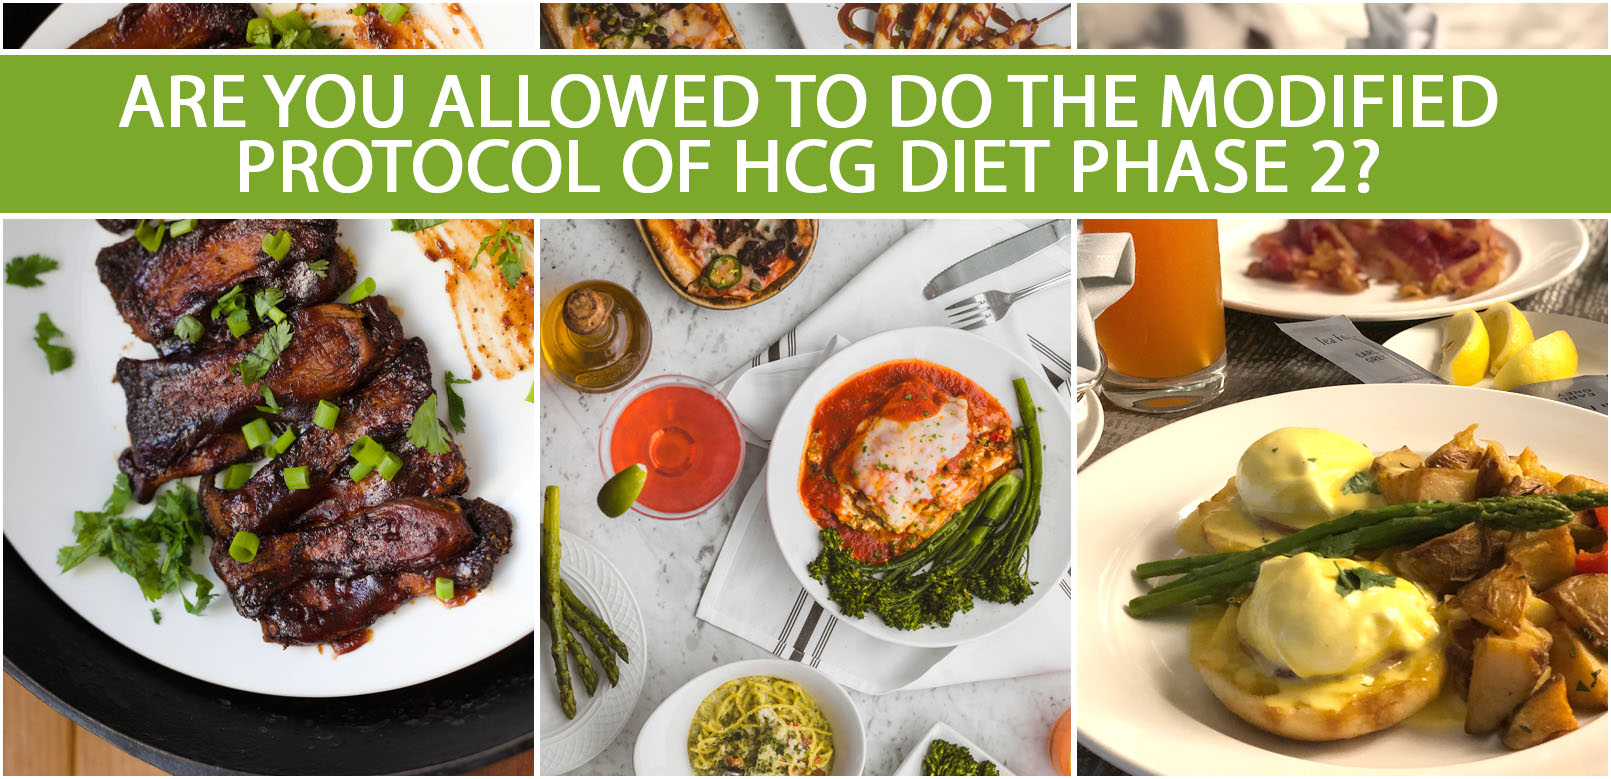 ARE YOU ALLOWED TO DO THE MODIFIED PROTOCOL OF HCG DIET PHASE 2